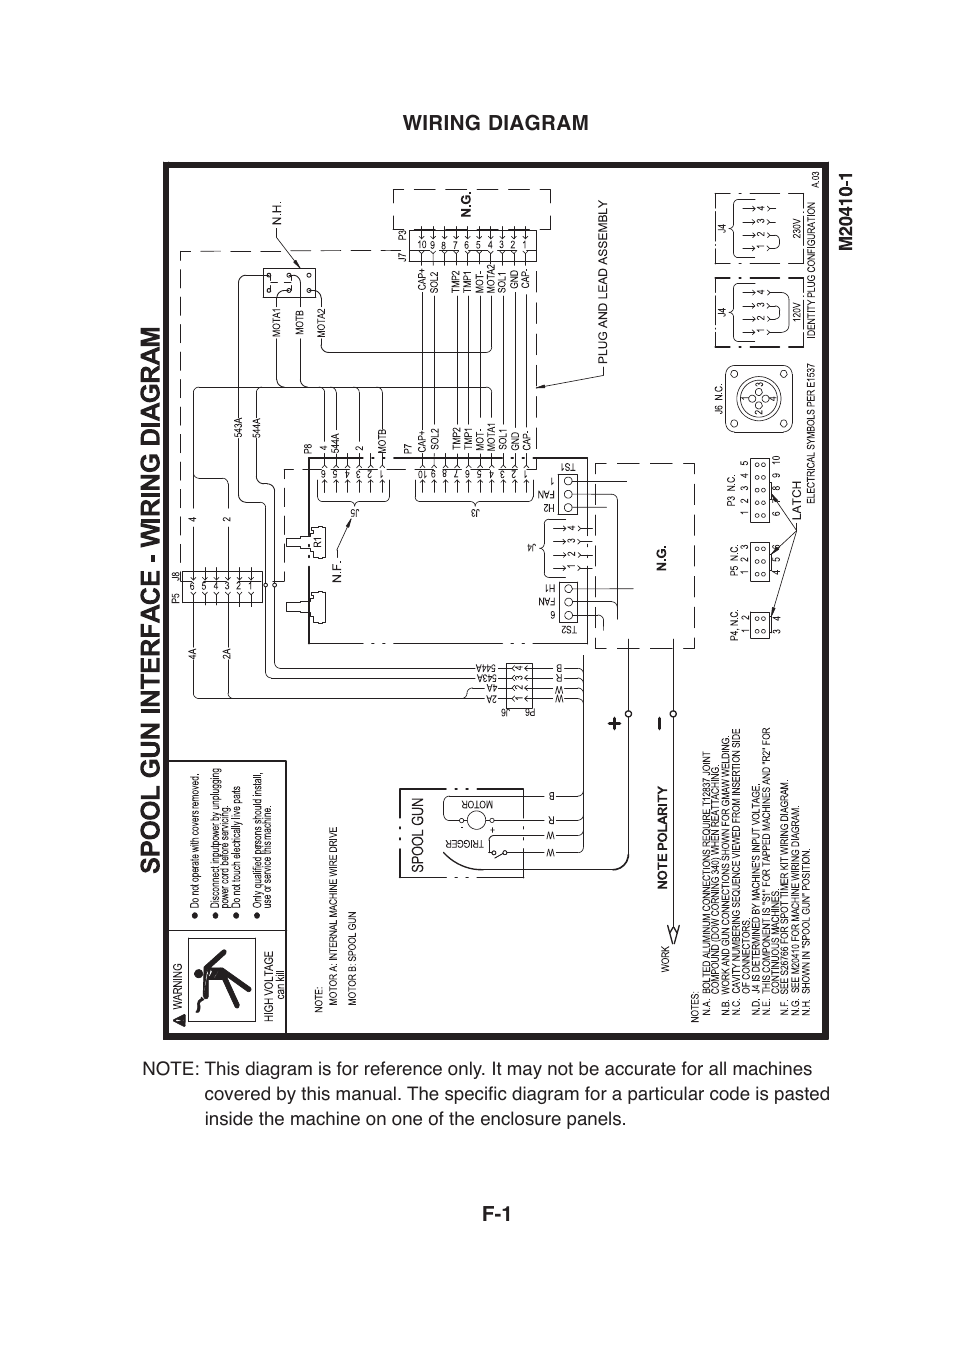 hight resolution of wiring diagram f 1 lincoln electric imt913 magnum 100sg spool gun user manual page 35 118